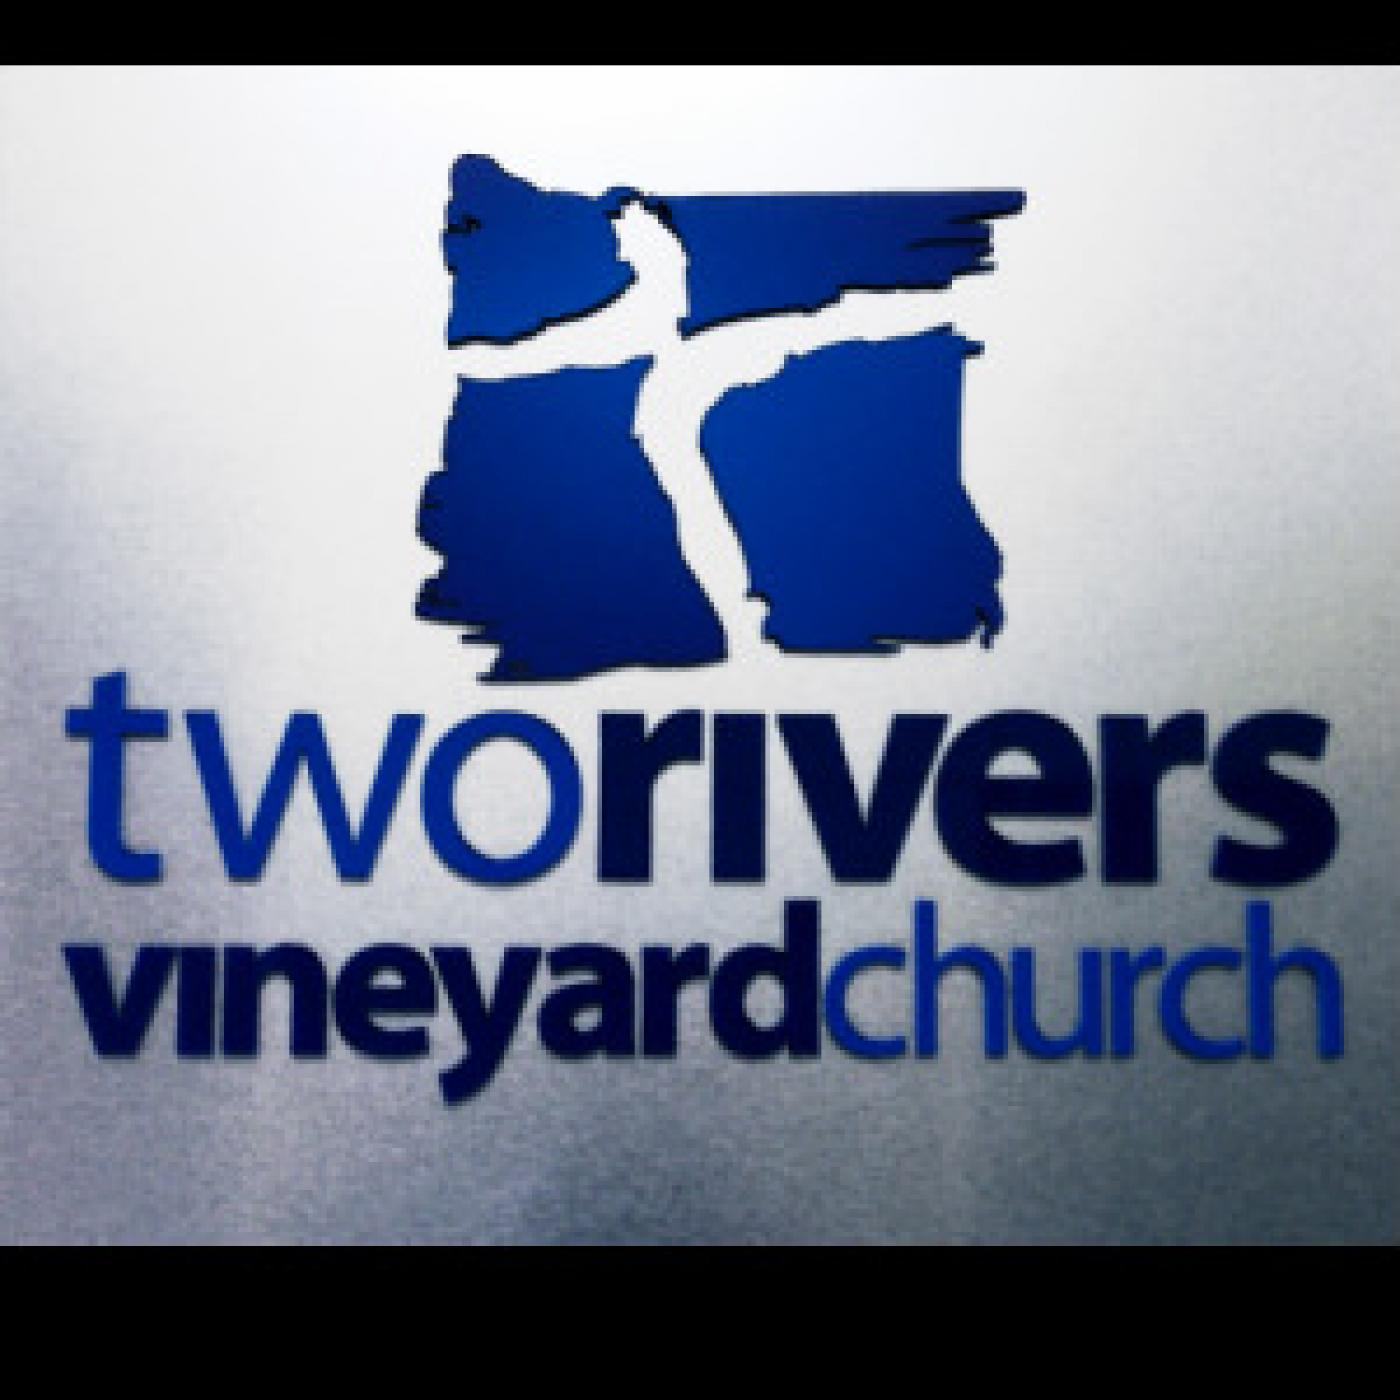 Two Rivers Vineyard Church Mankato